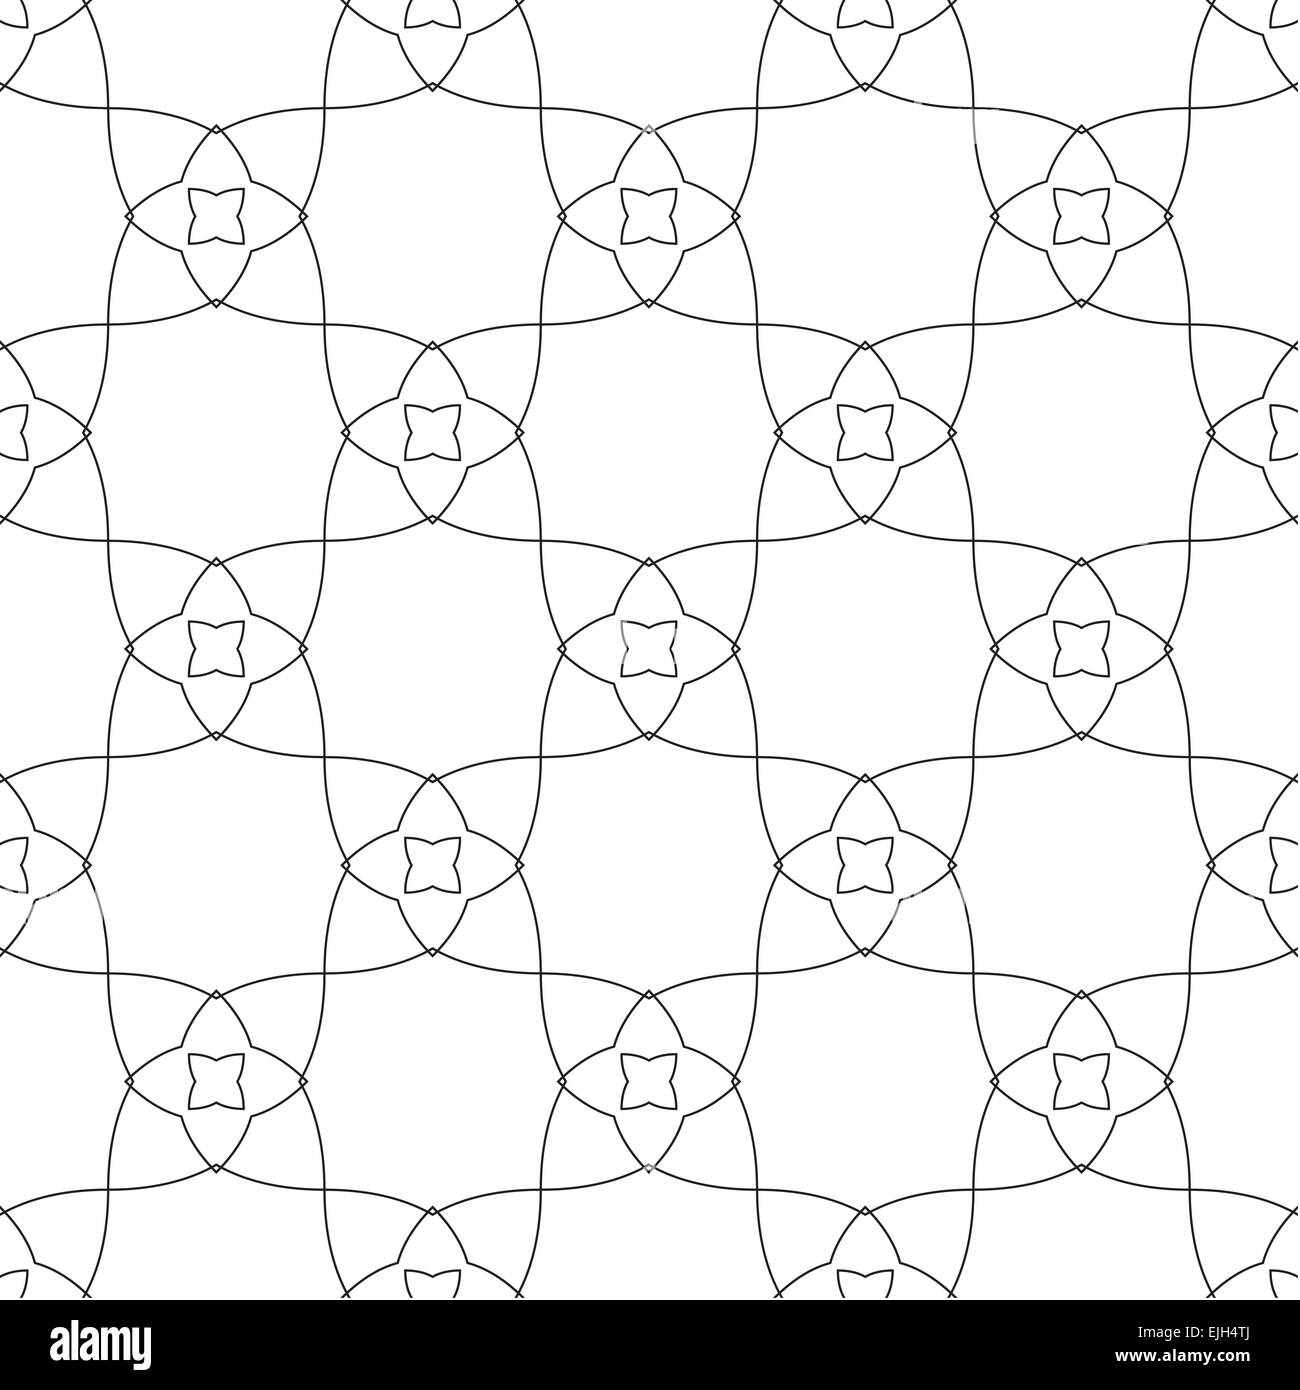 Stock Photo   Symmetrical Geometric Shapes Black And White Floral Vector  Textile Backdrop. Can Be Use As Fabric, Tablecloth Pattern